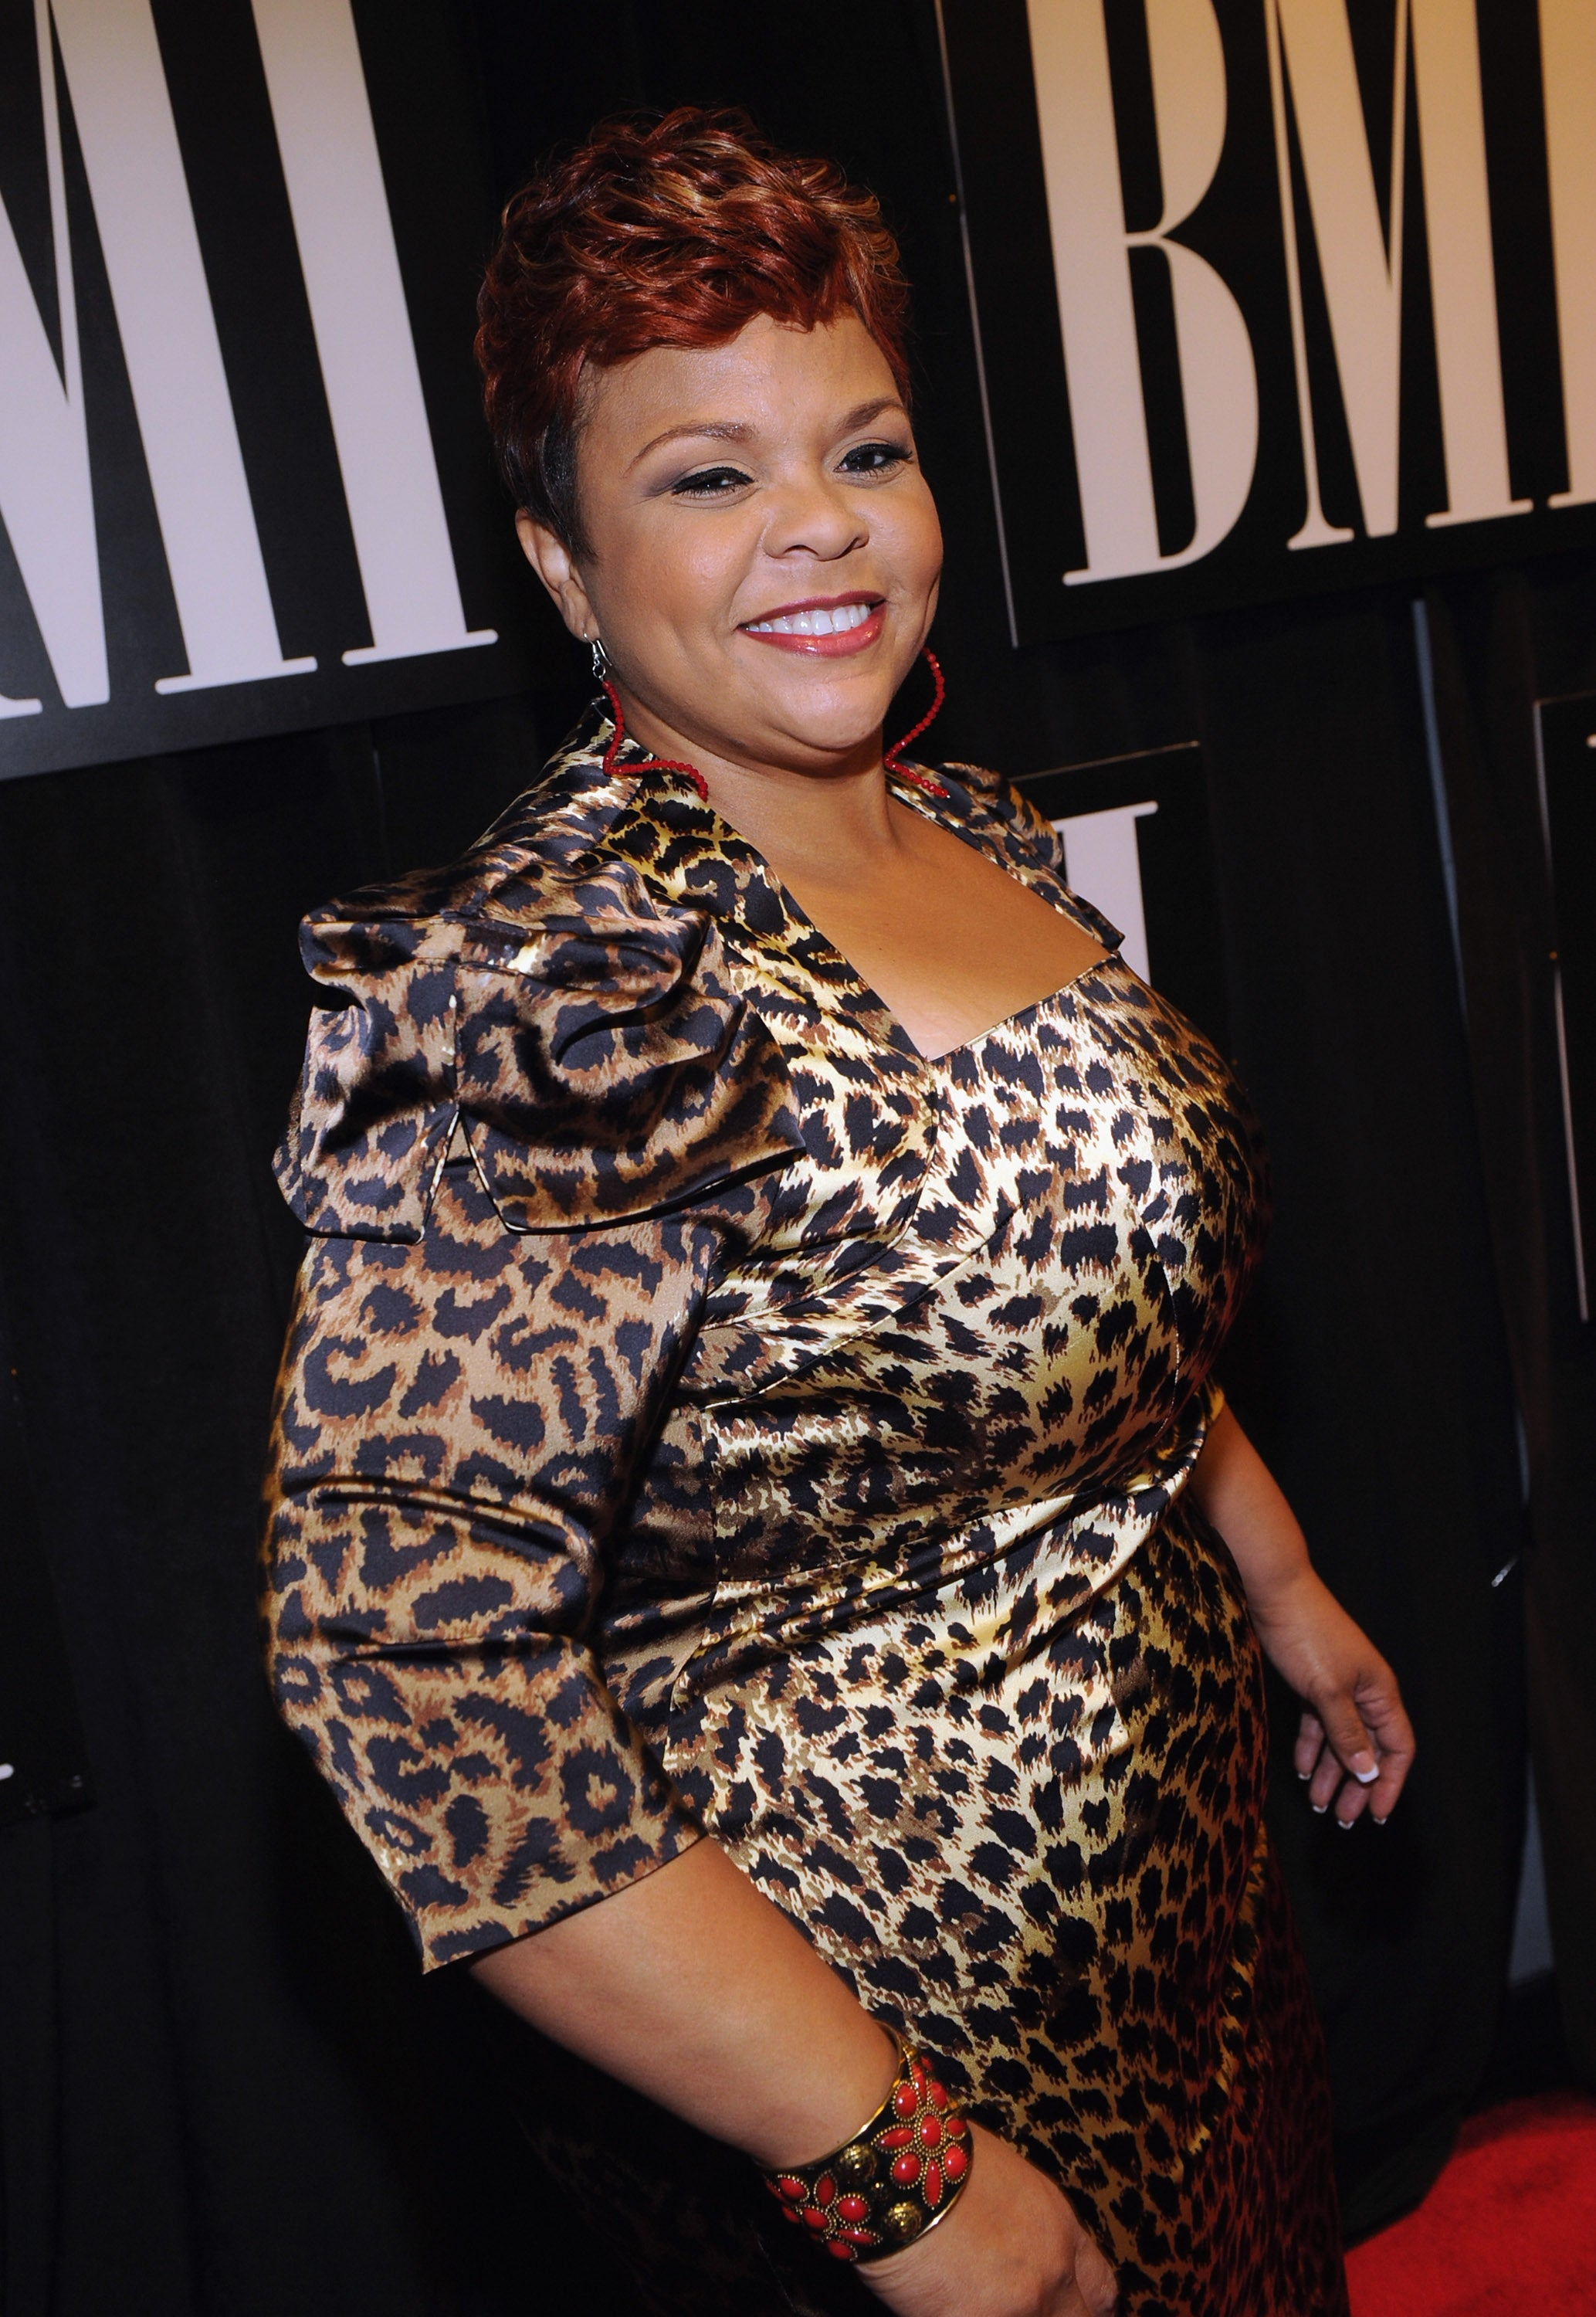 Tamela Mann on Her Latest Album, Weight-Loss, and Working with Whitney in 'Sparkle'